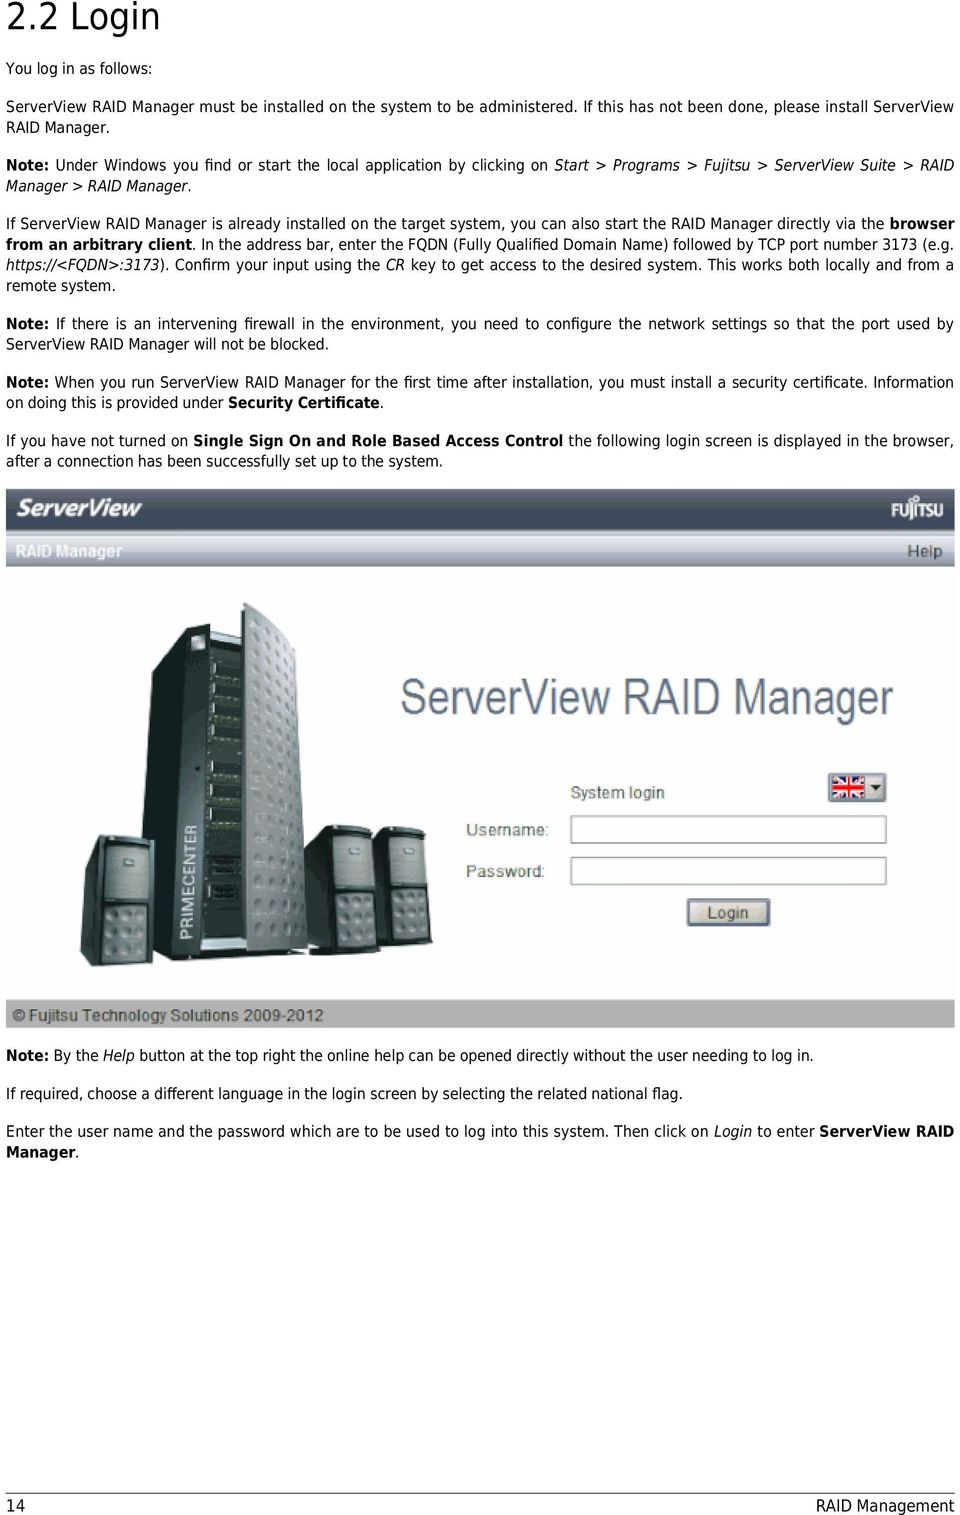 If ServerView RAID Manager is already installed on the target system, you can also start the RAID Manager directly via the browser from an arbitrary client.